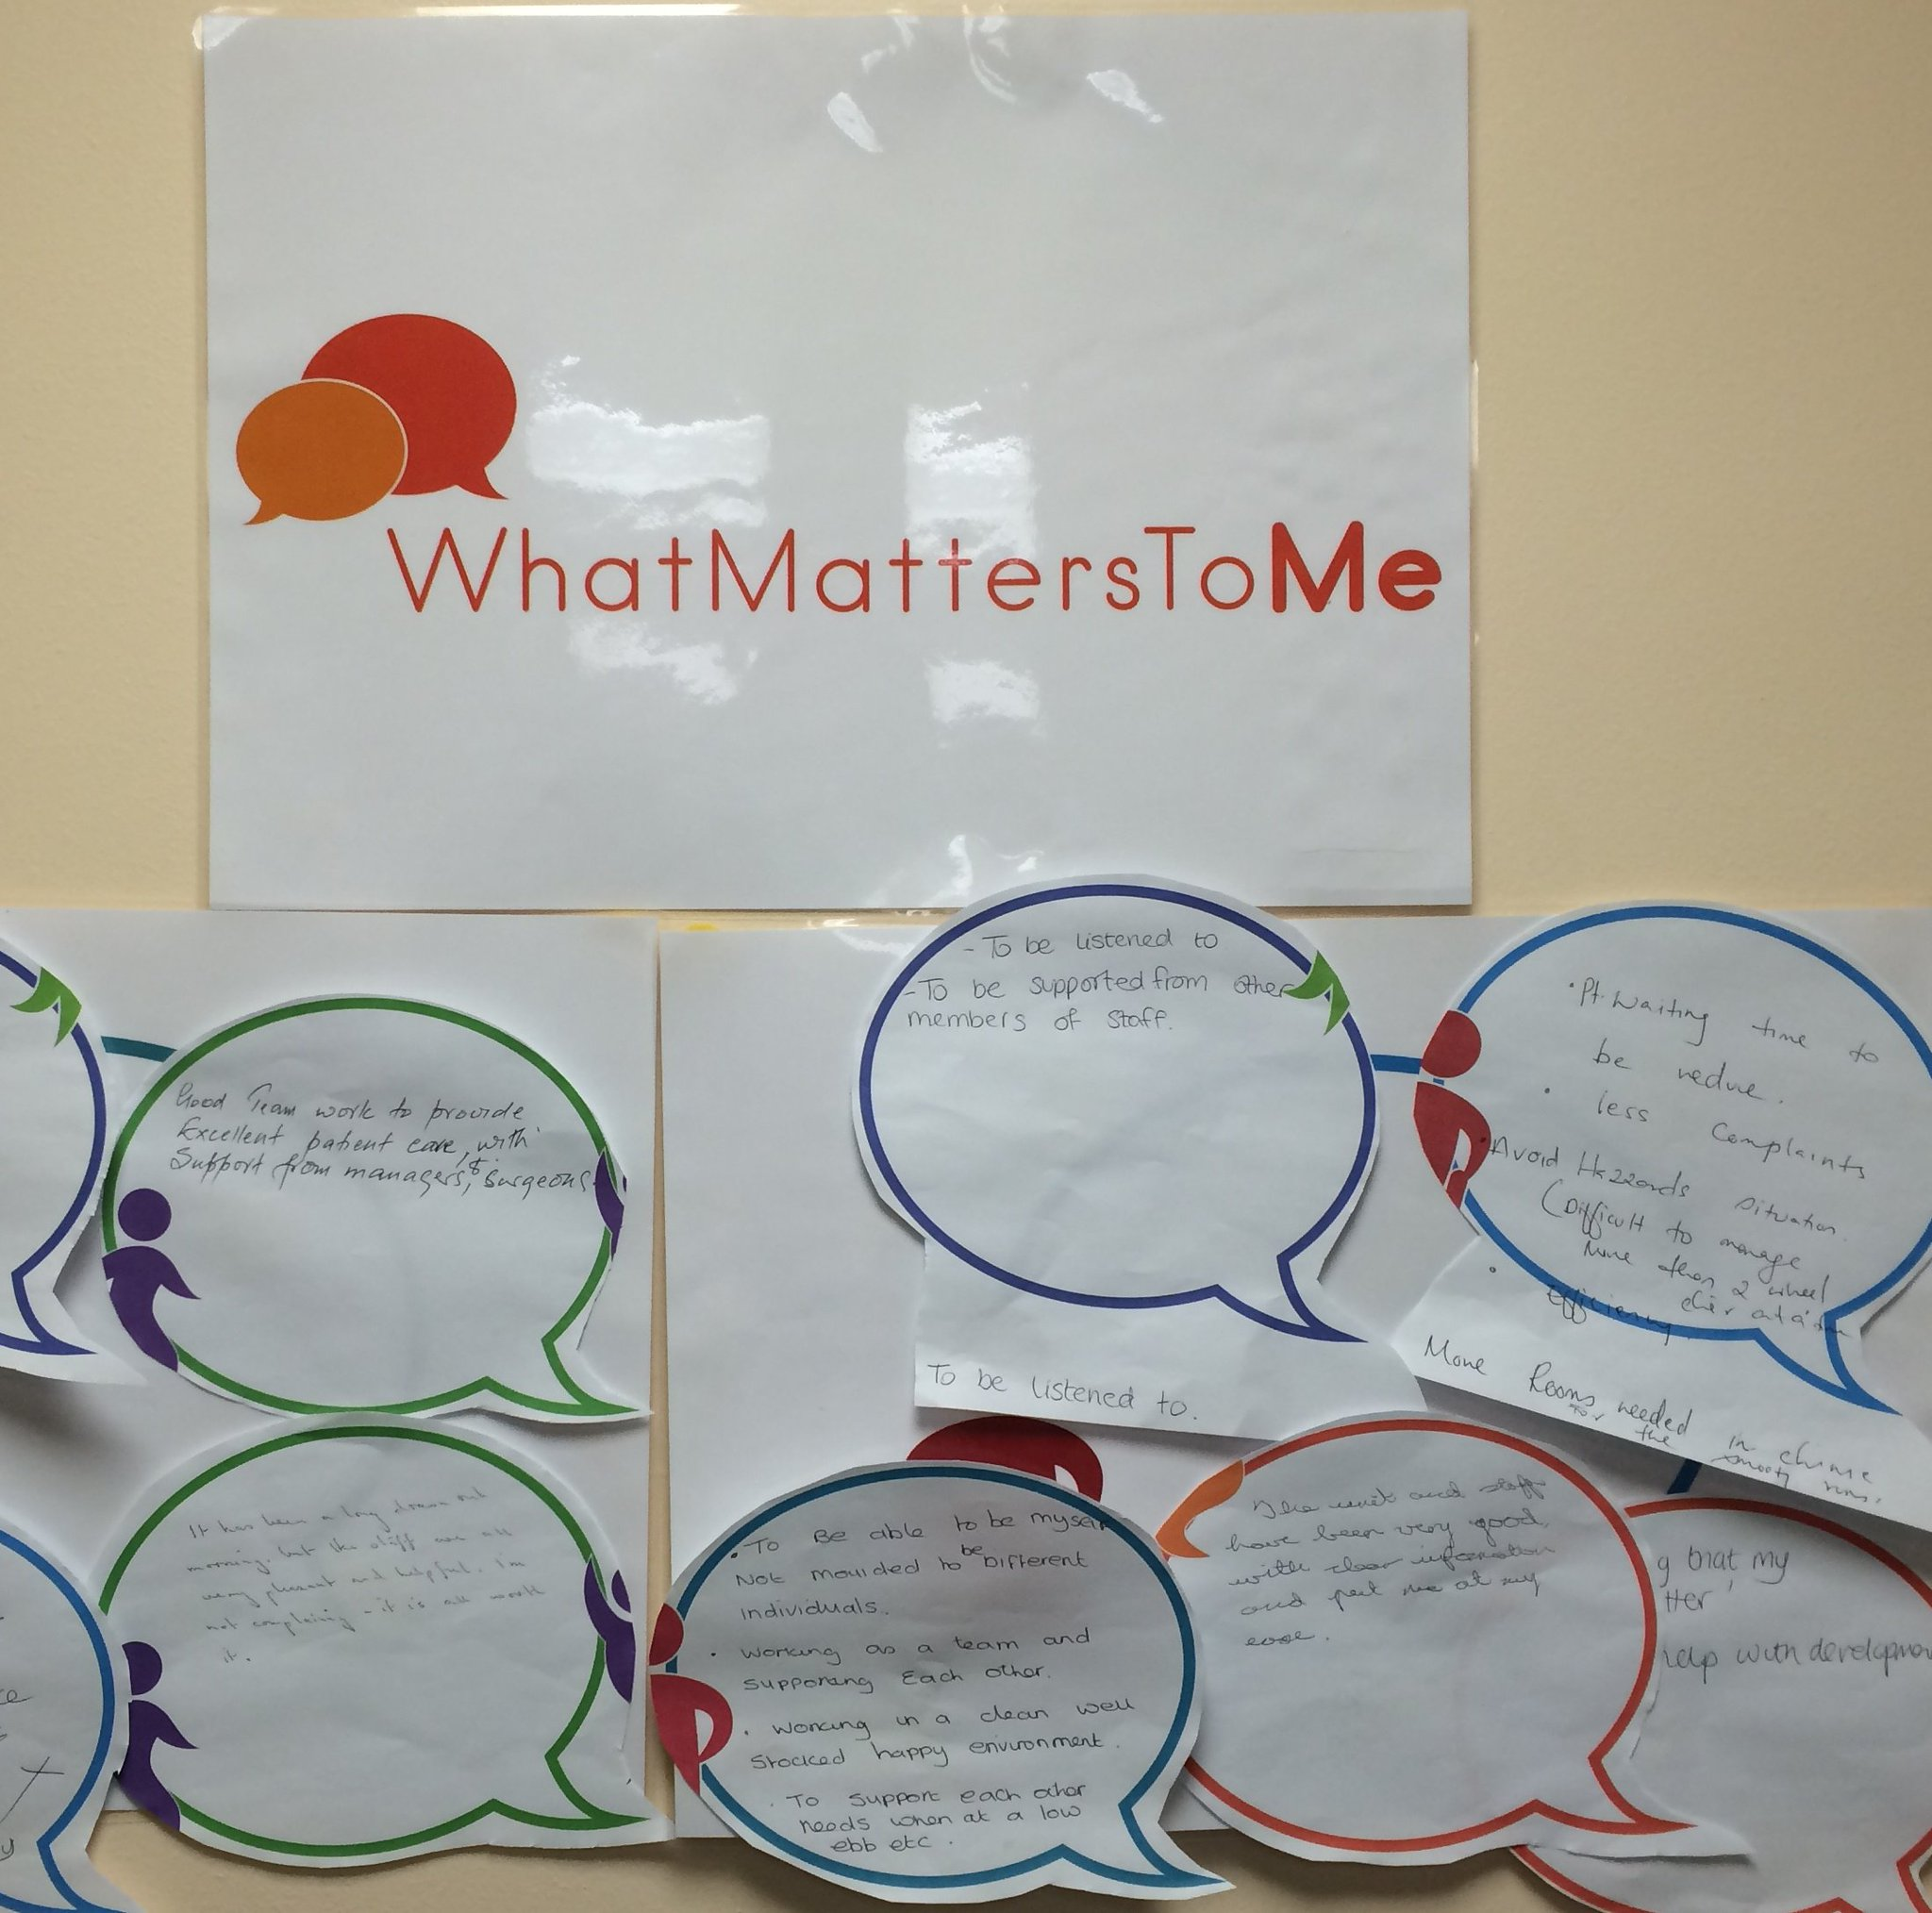 The #WhatMatterstoMe board at Withington Cataract Centre displaying comments, suggestions and thanks from patients and staff. #wmtm https://t.co/30VtRP6i04